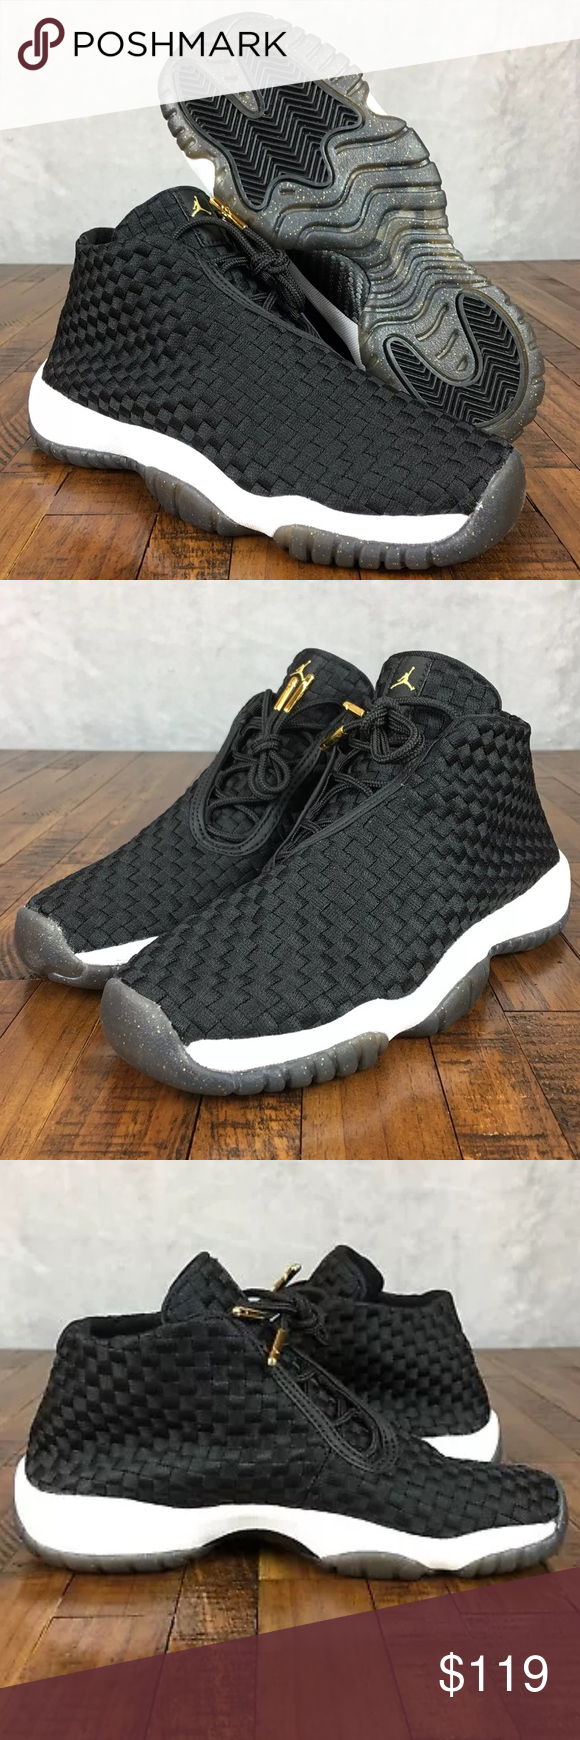 NEW Air Jordan Future BG GS Shoes Youth or Womens NIKE AIR JORDAN FUTURE  GRADE SCHOOL ab36ea72b